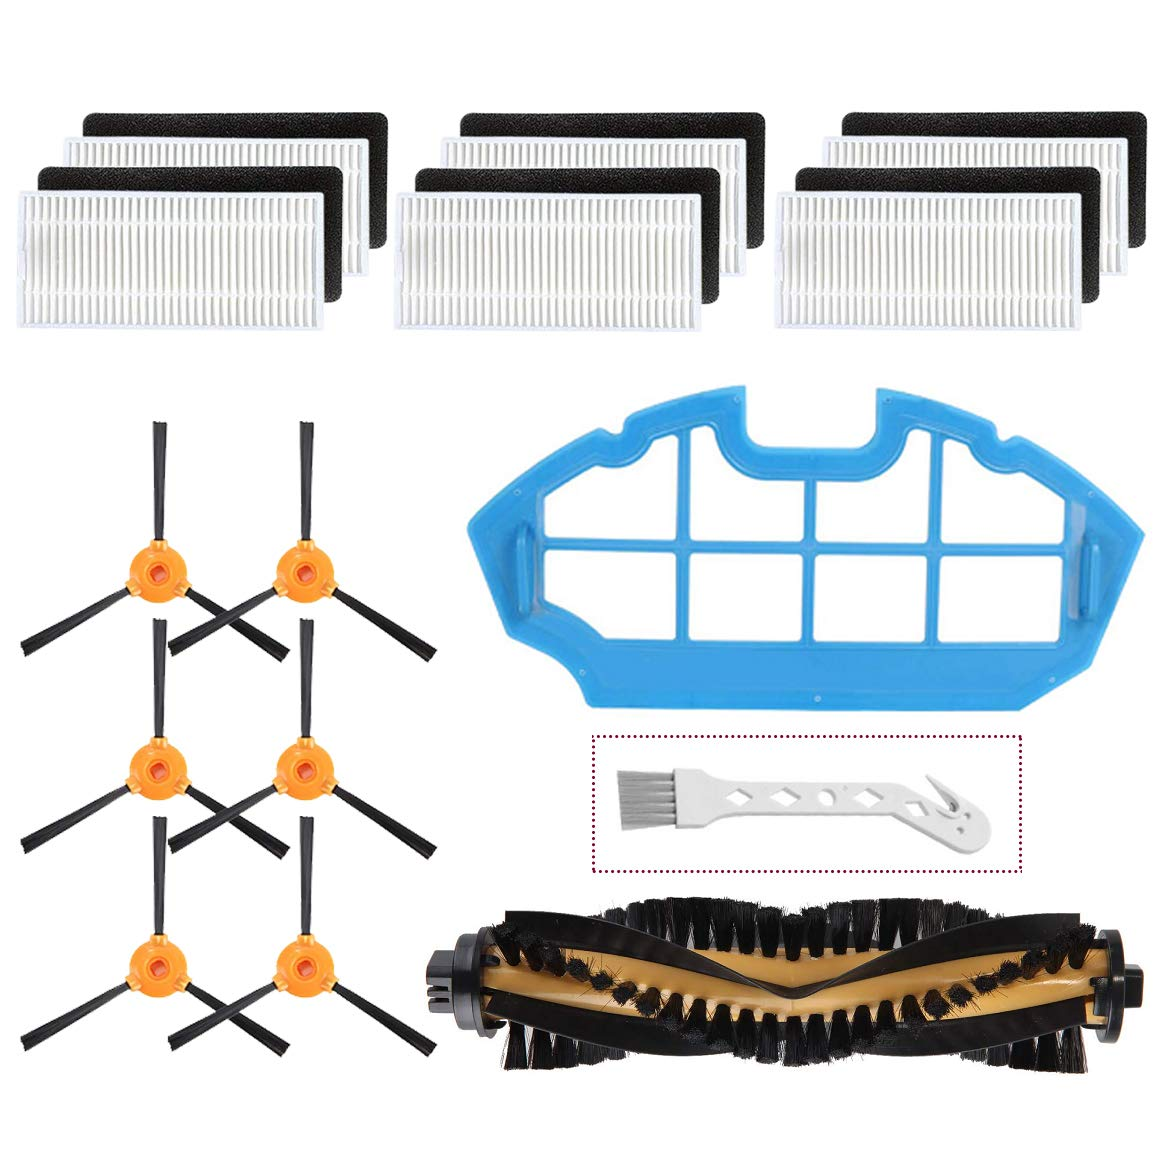 Mochenli Replacement Parts Accessories for Ecovacs DEEBOT N79 N79s Robotic Vacuum Cleanr,6 Side Brushes,6 Filter,1 Main Brushes, 1 Primary Filter Accessories Replacment Parts Kit by Mochenli